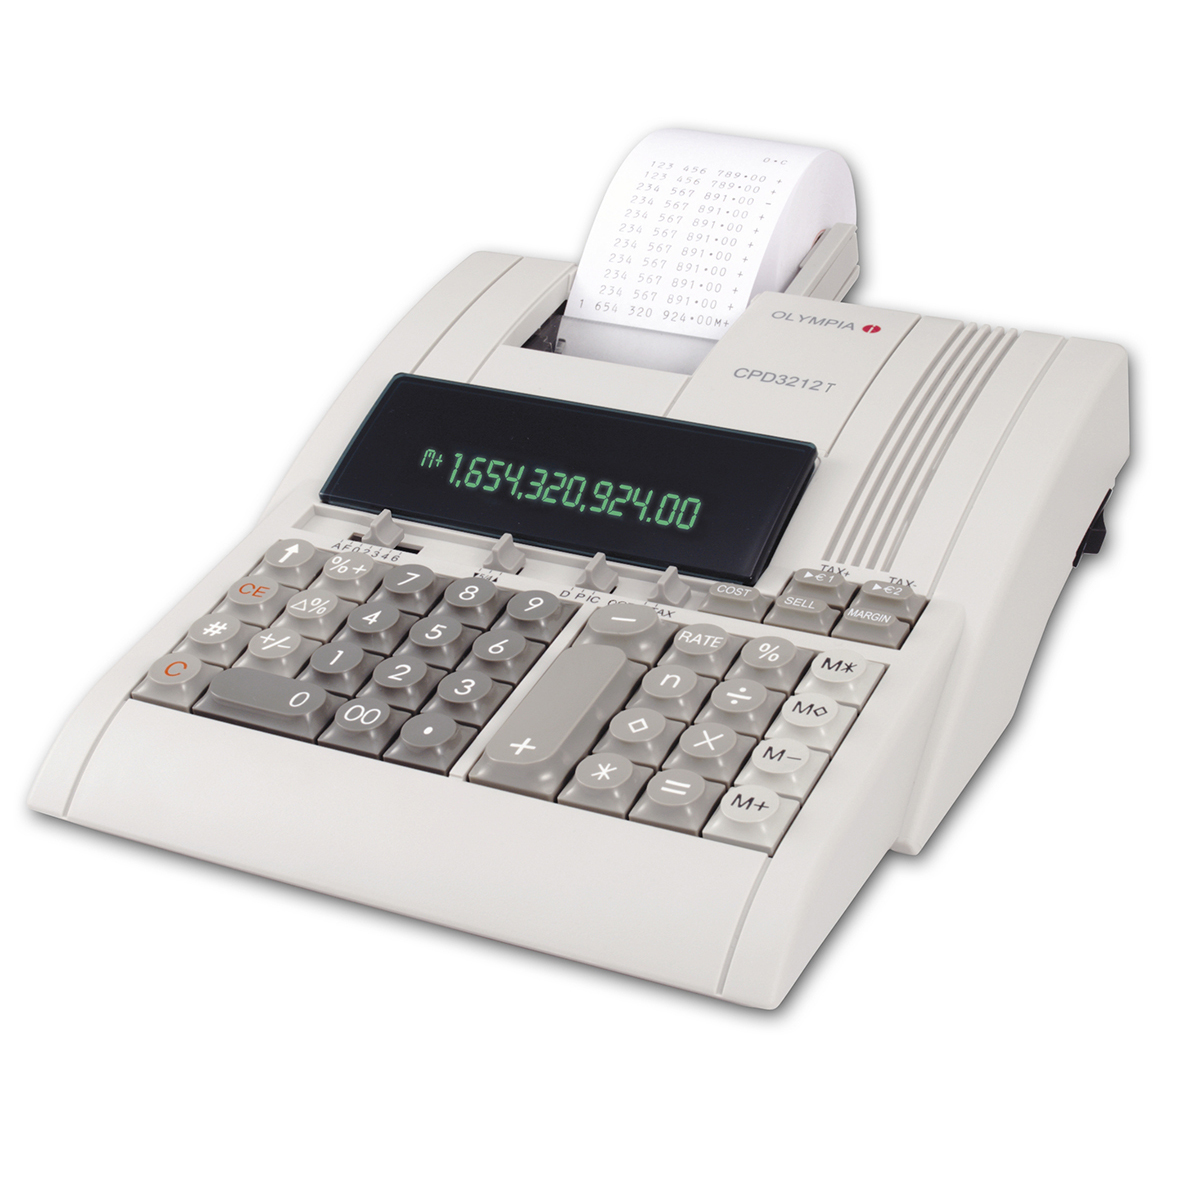 Olympia CPD 3212T Electronic Desktop Calculator - White